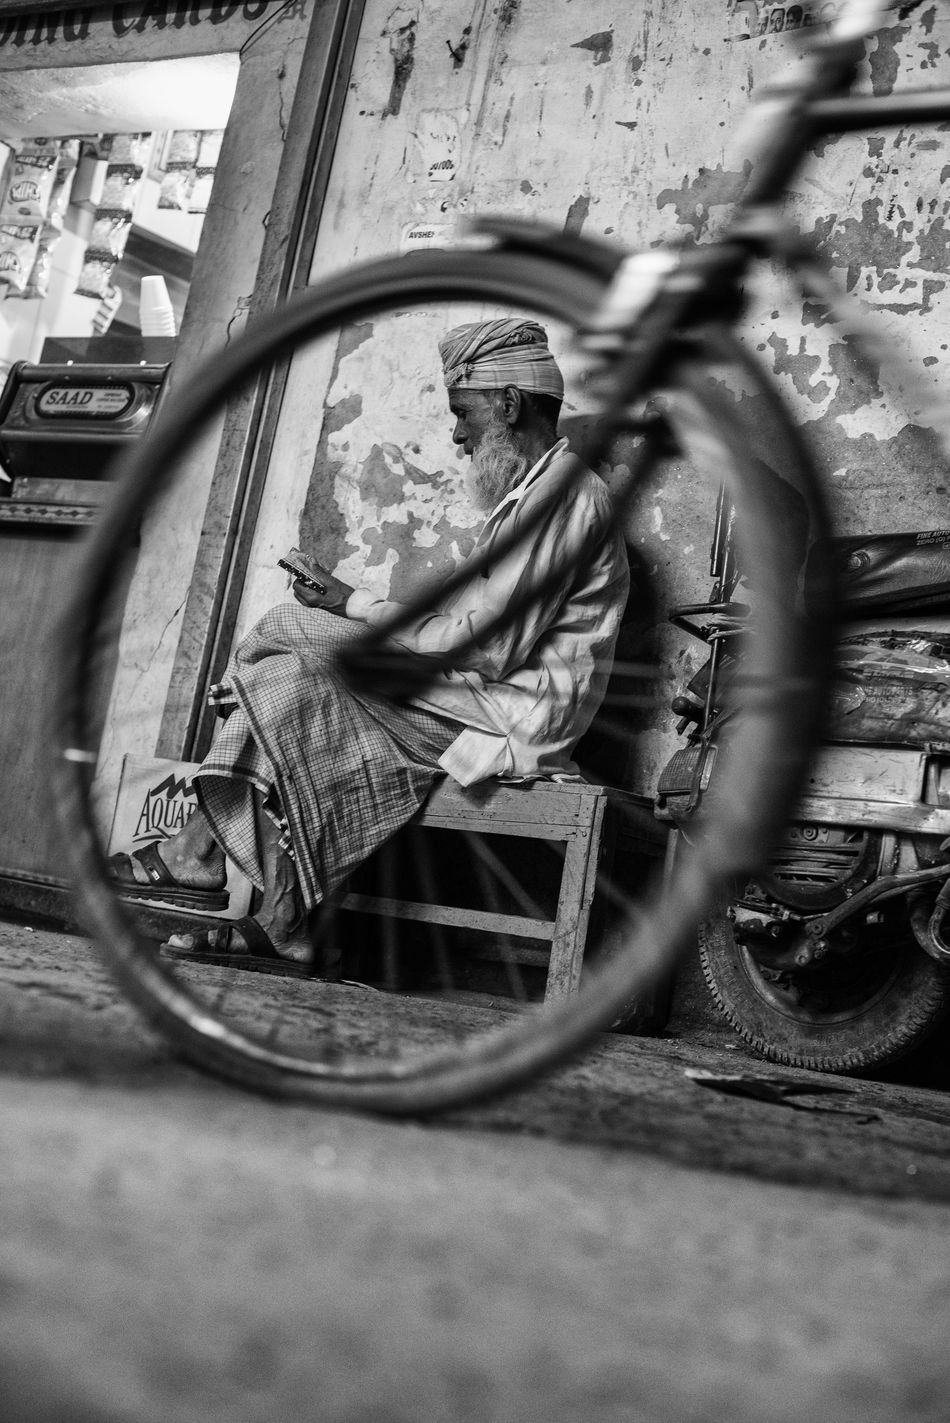 EyEmNewHere One Person Street Photography Old Delhi EyeEm Best Shots India Travel Chandnichowk New Delhi, India EyeEmNewHere Travel Destinations Low Perspective Street Life Bicycle Old Man Beard Man Reading Interesting Angles Black & White Indiapictures Nightlife Decisive Moment